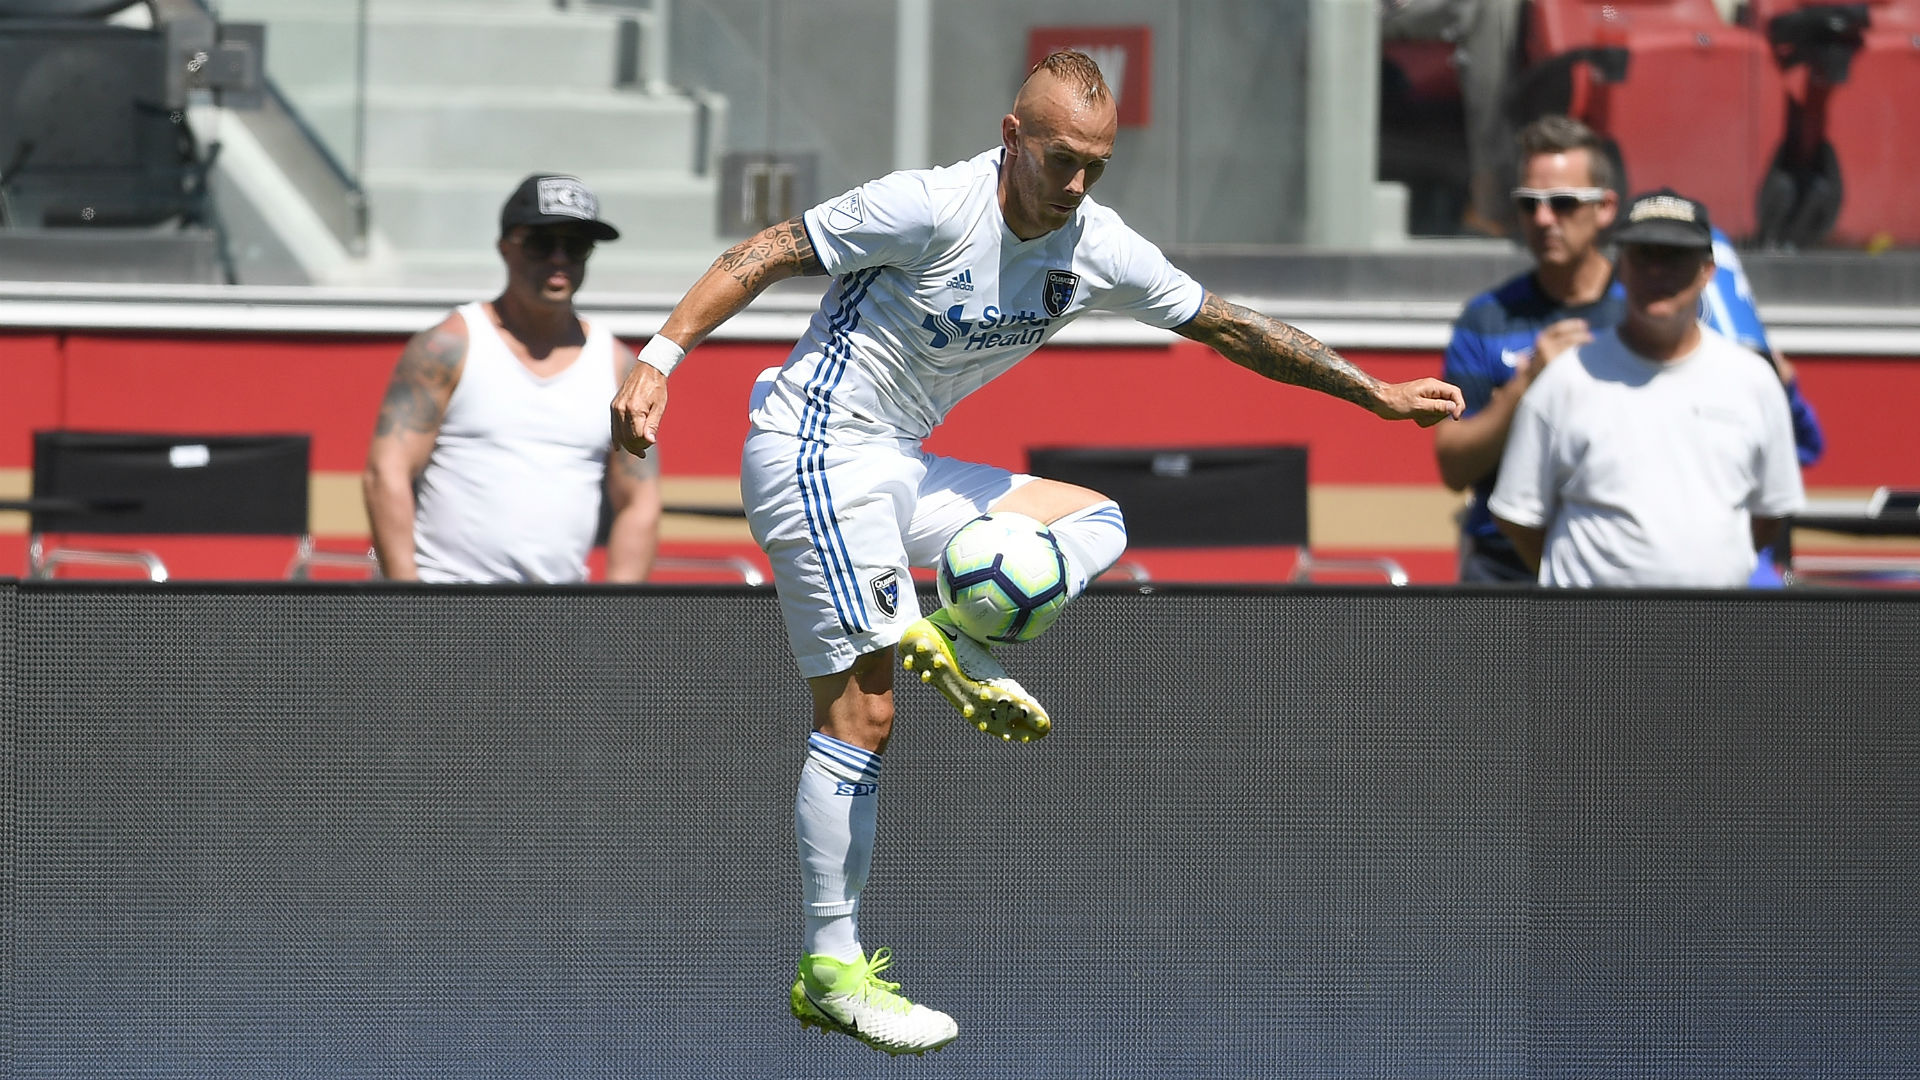 A 4-1 lead cut to 3-2 by VAR, but Quakes have no complaints after Atlanta defeat